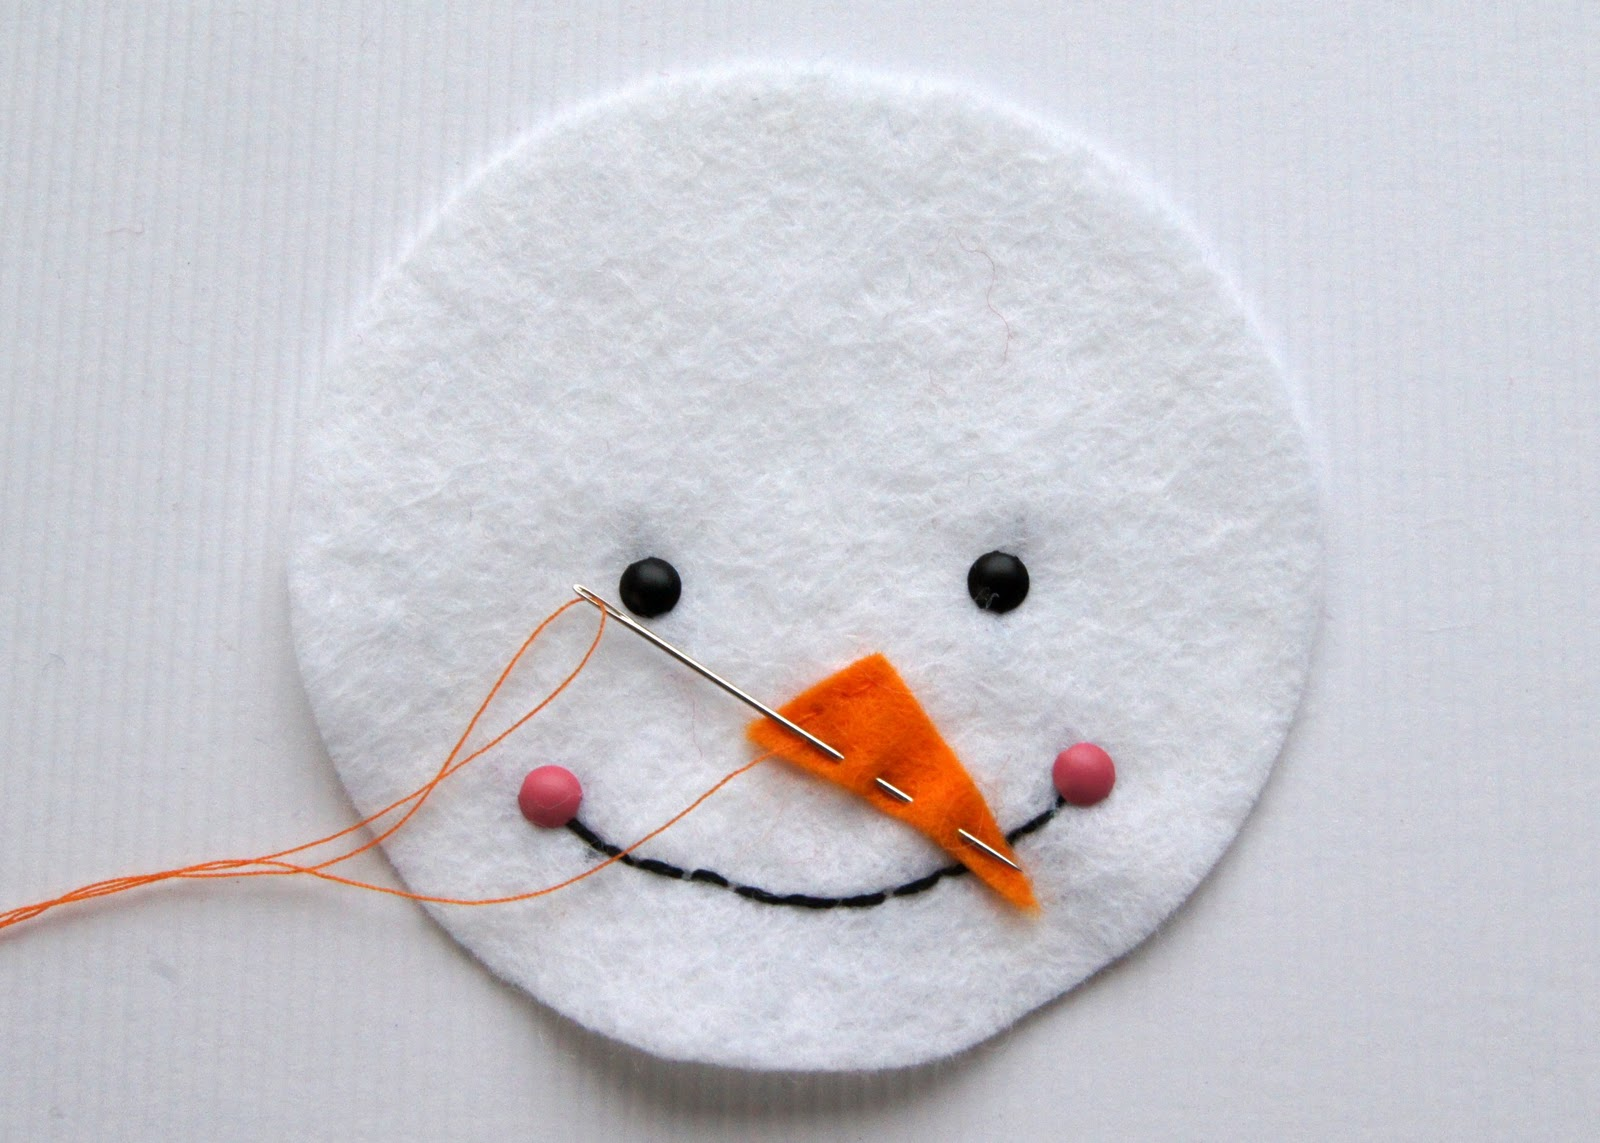 Snowman Nose Pattern The snowman's nose using a